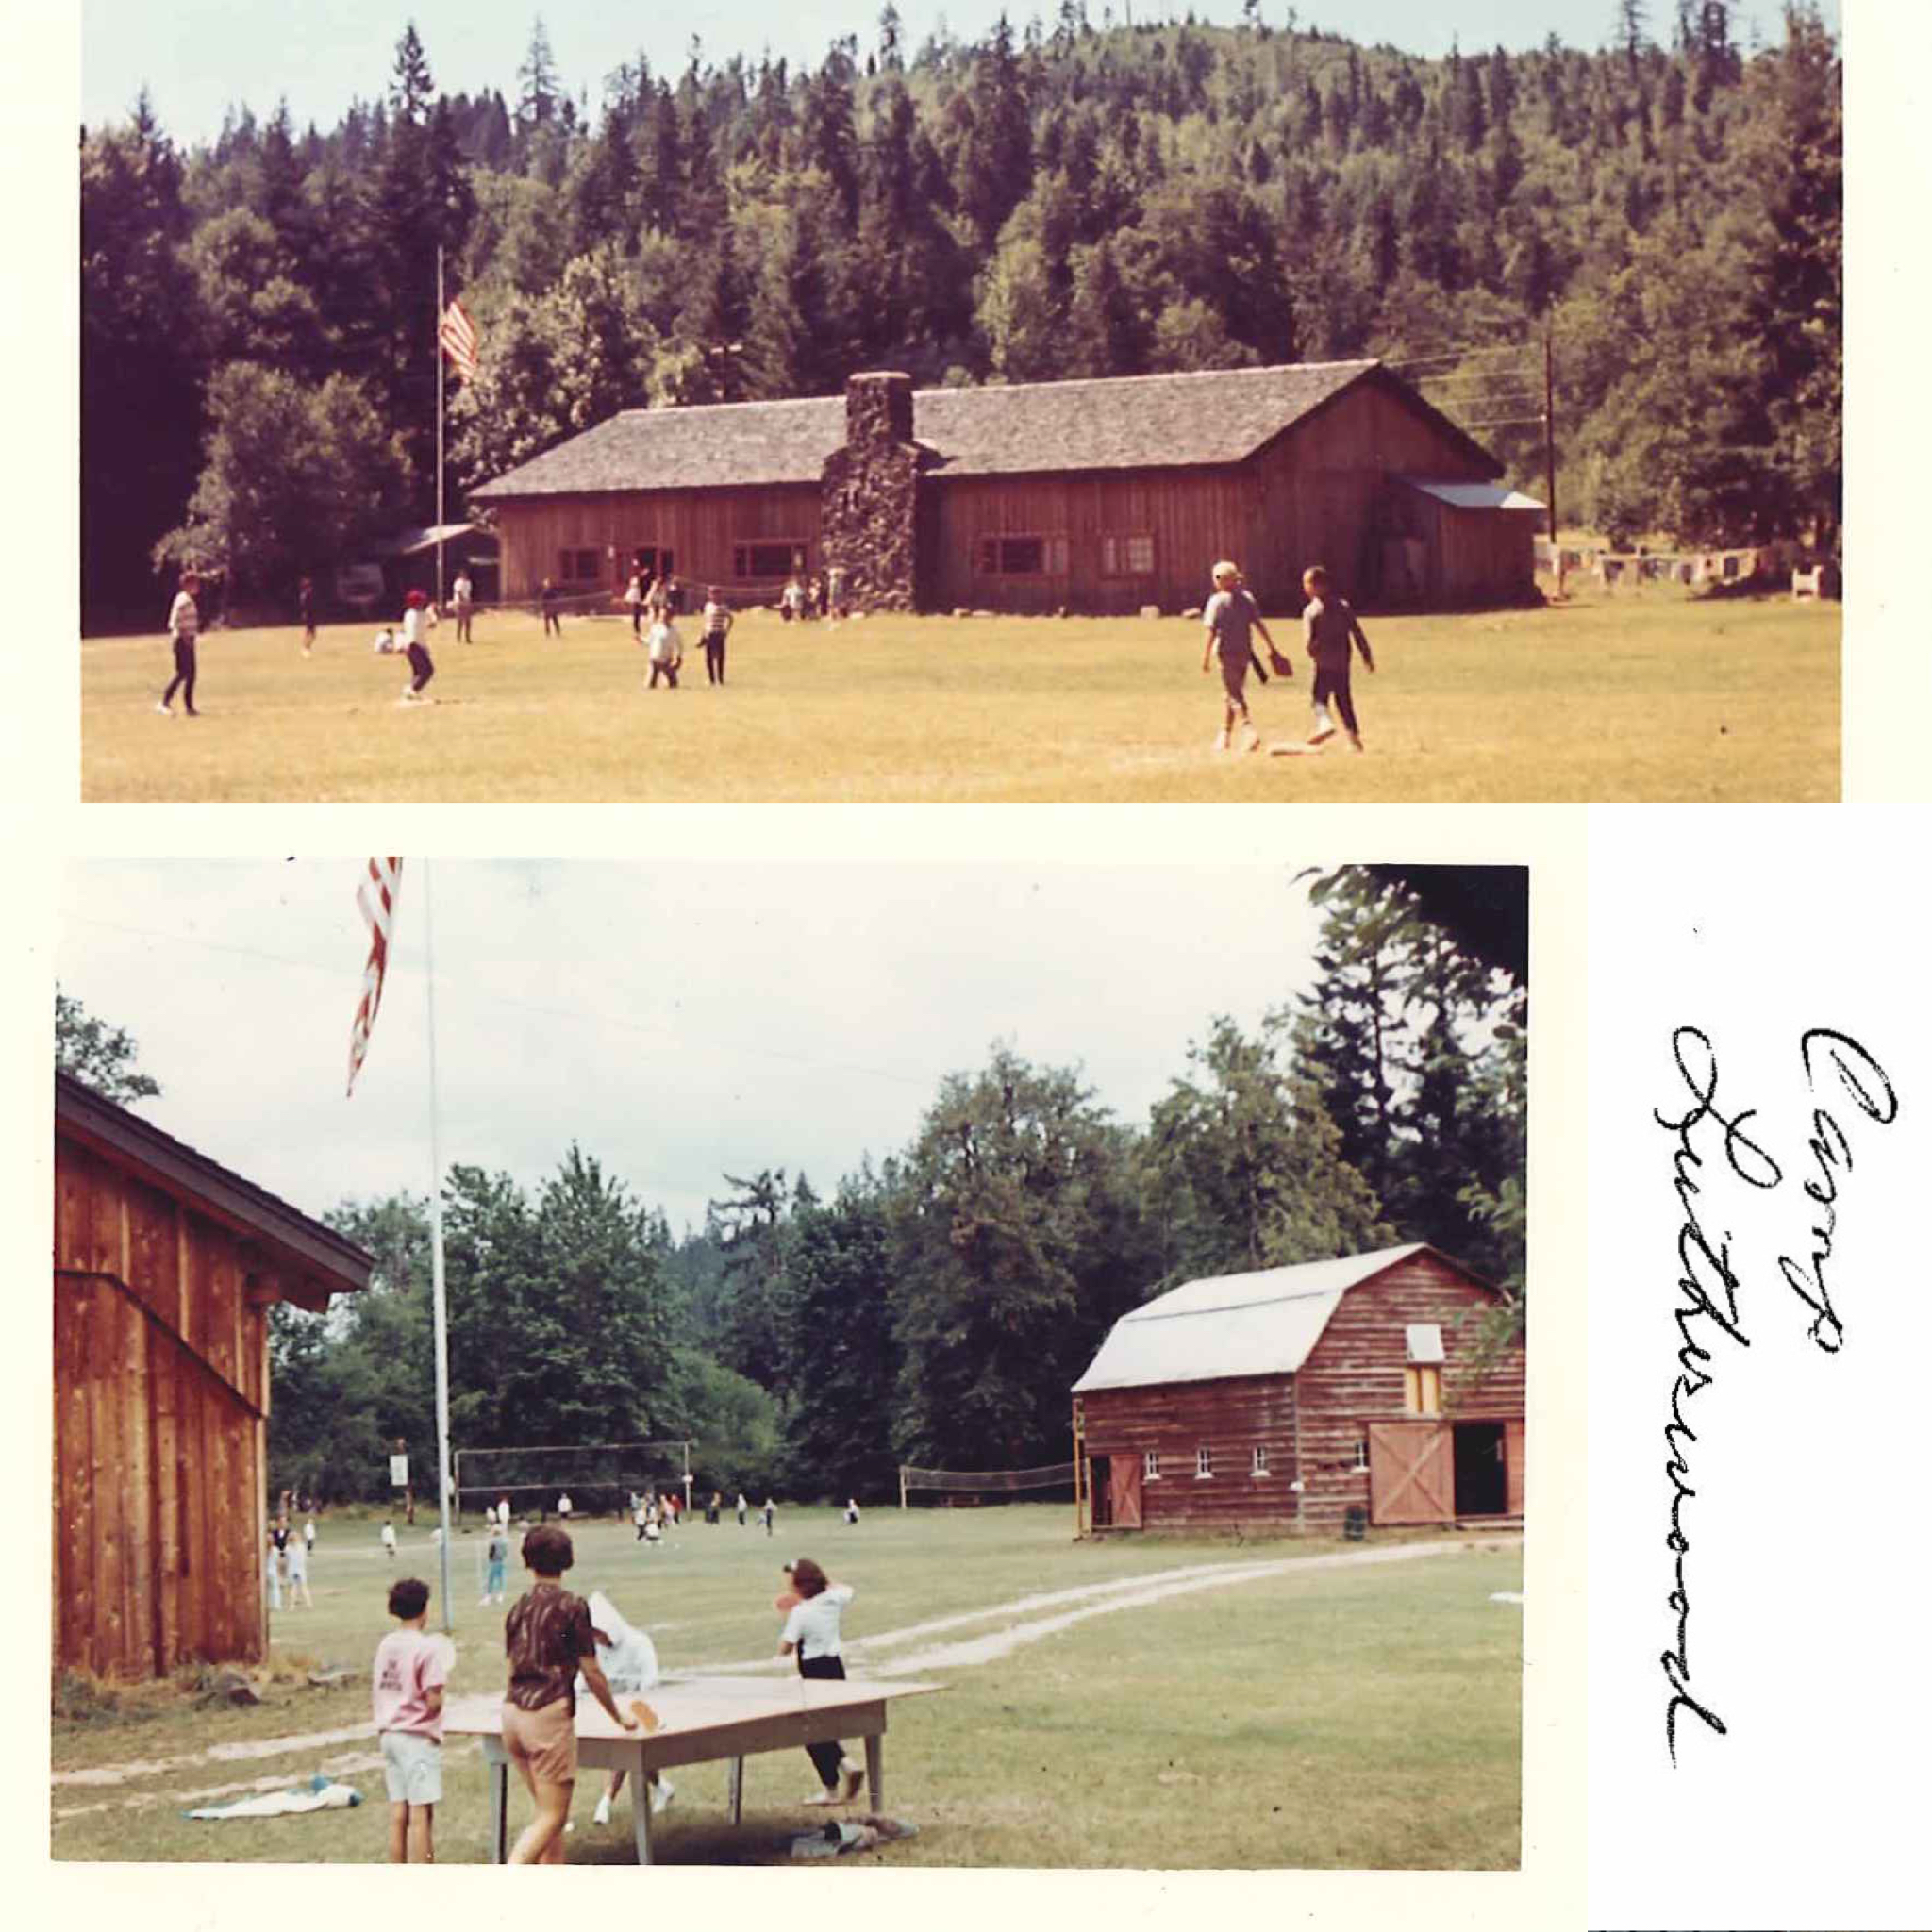 collage of photos from the 1960s the show the lodge and front field